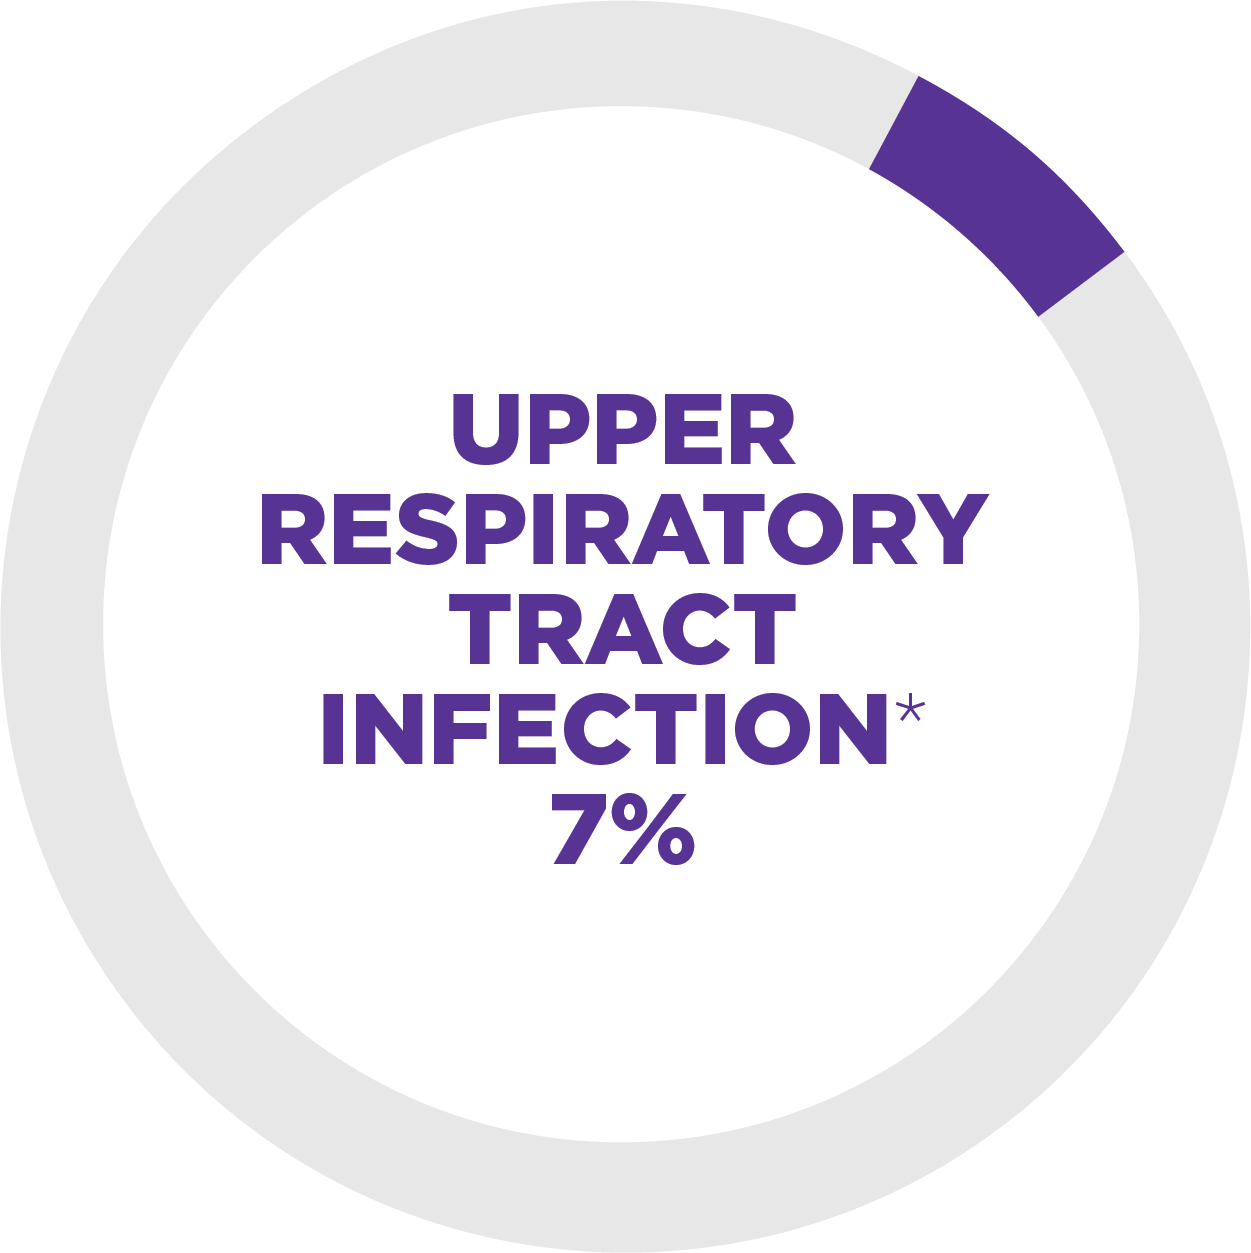 Upper respiratory tract infection (symptoms may include runny nose, stuffy nose, and sneezing), 7%